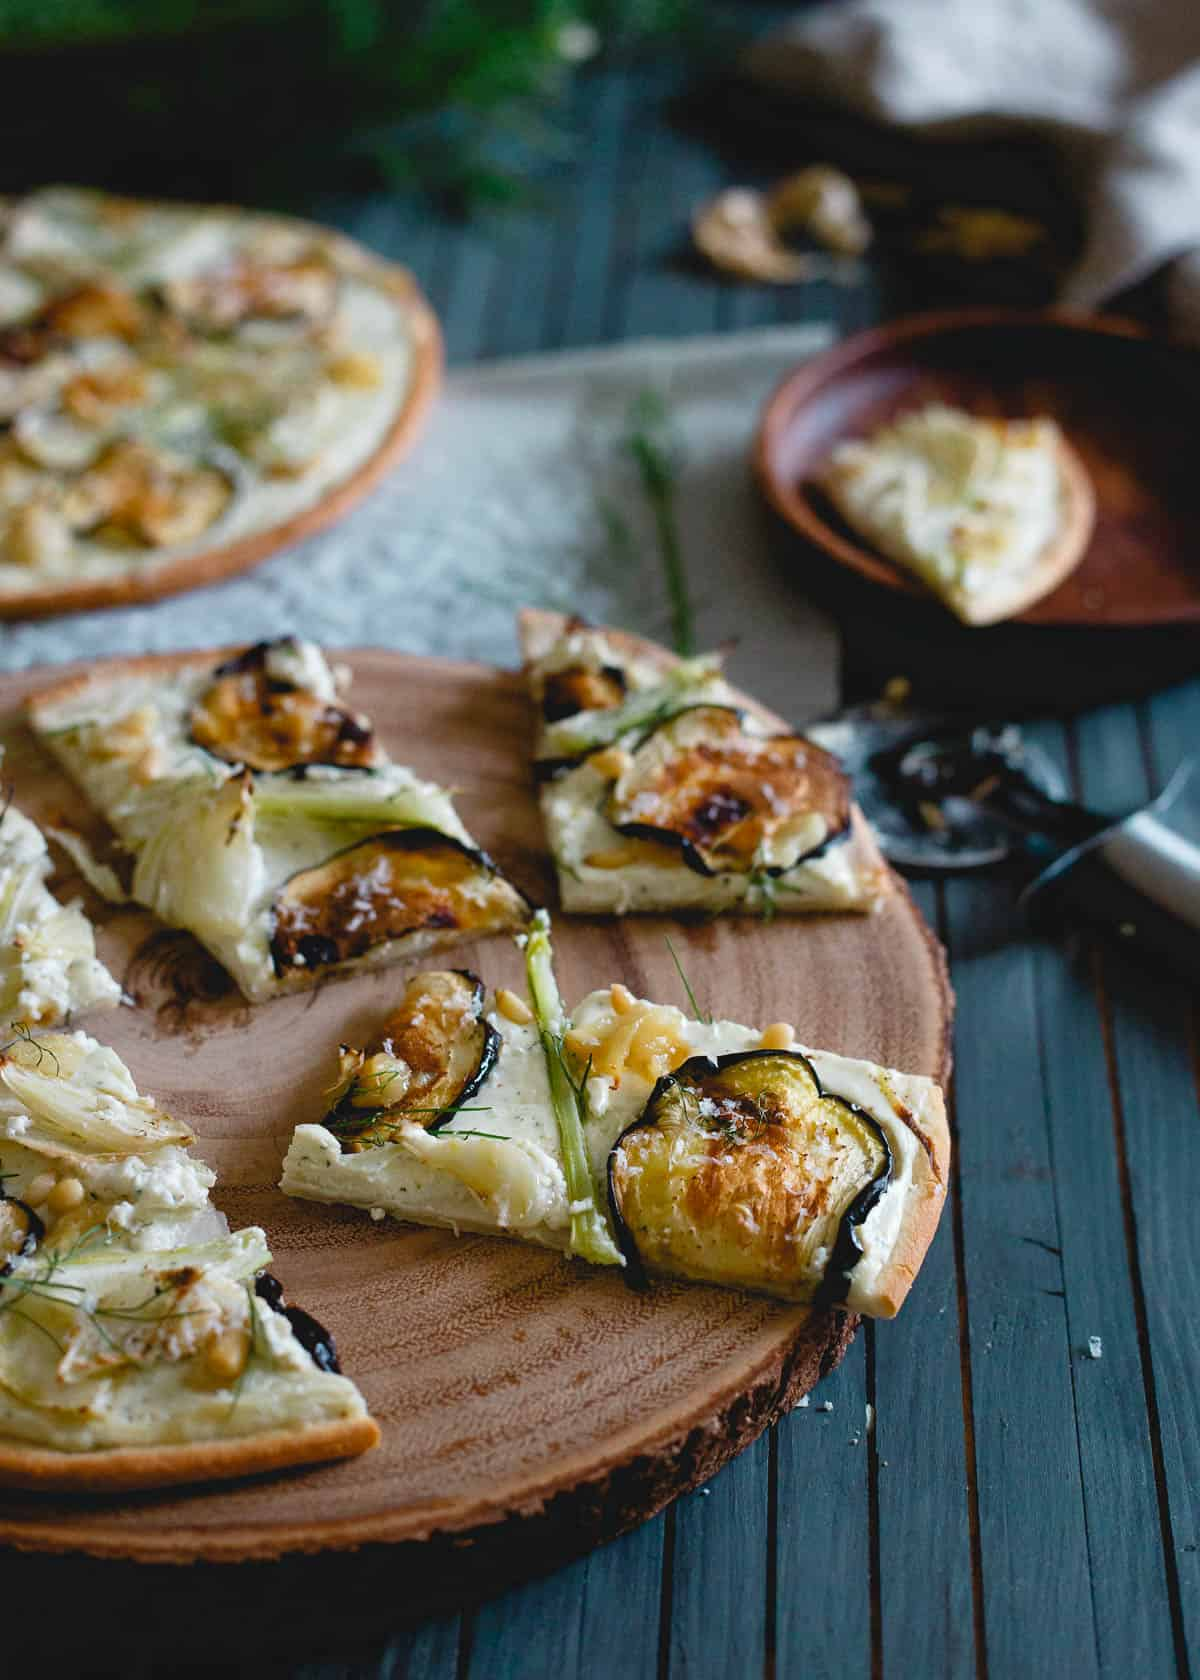 Jazz up pizza night with this roasted eggplant fennel pizza, packed full of delicious winter flavors!